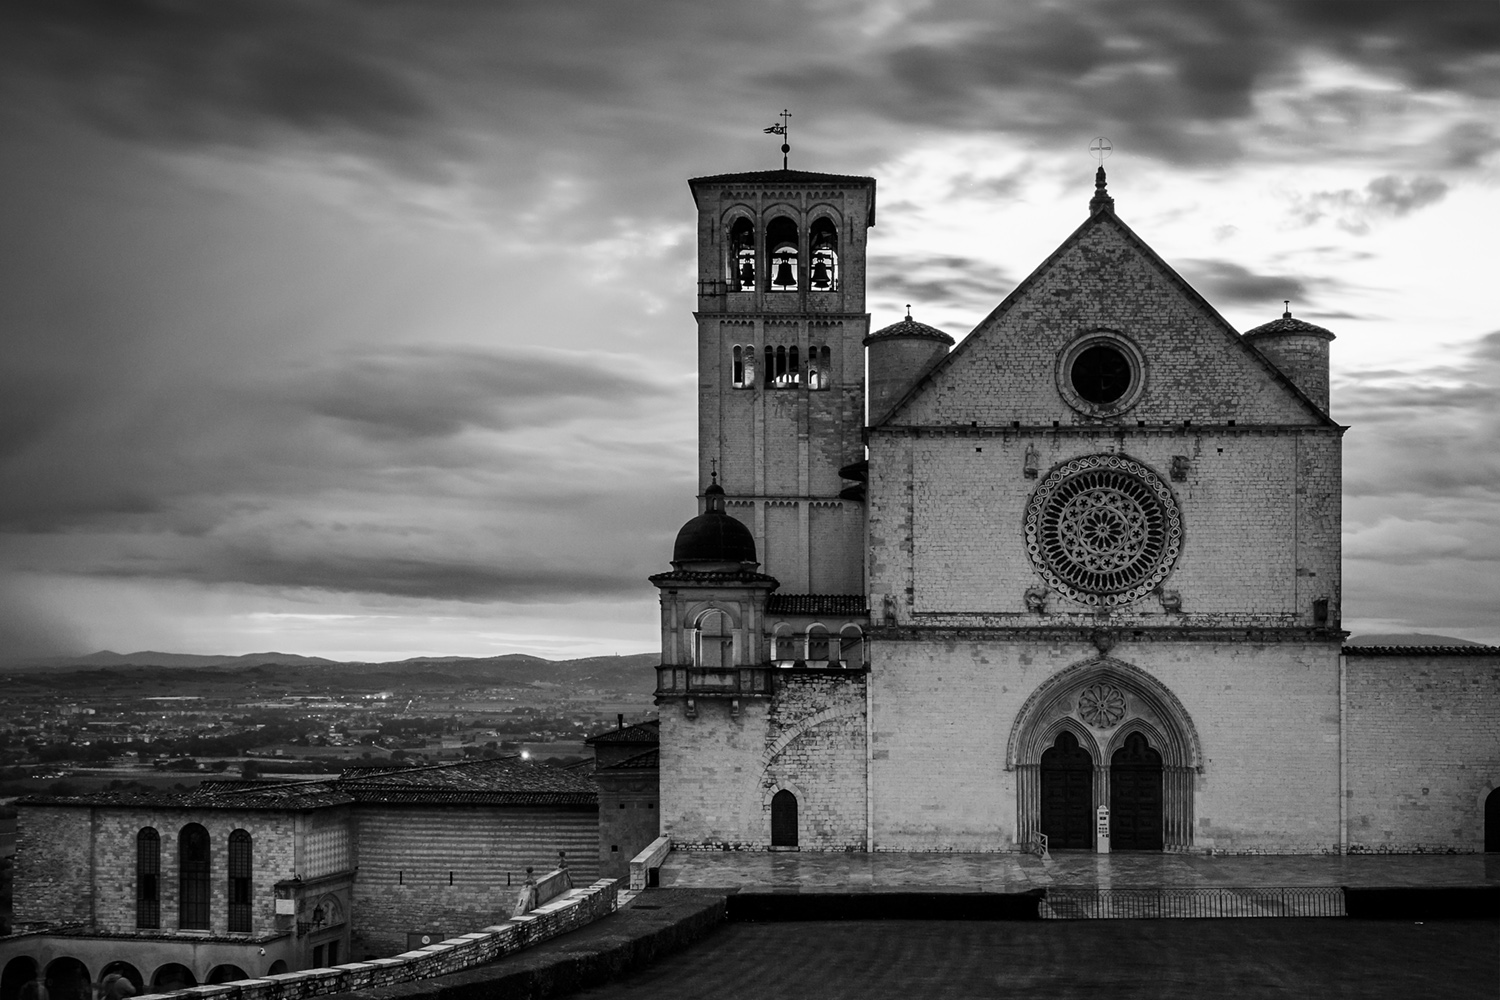 basilica-di-san-francesco-assisi-002